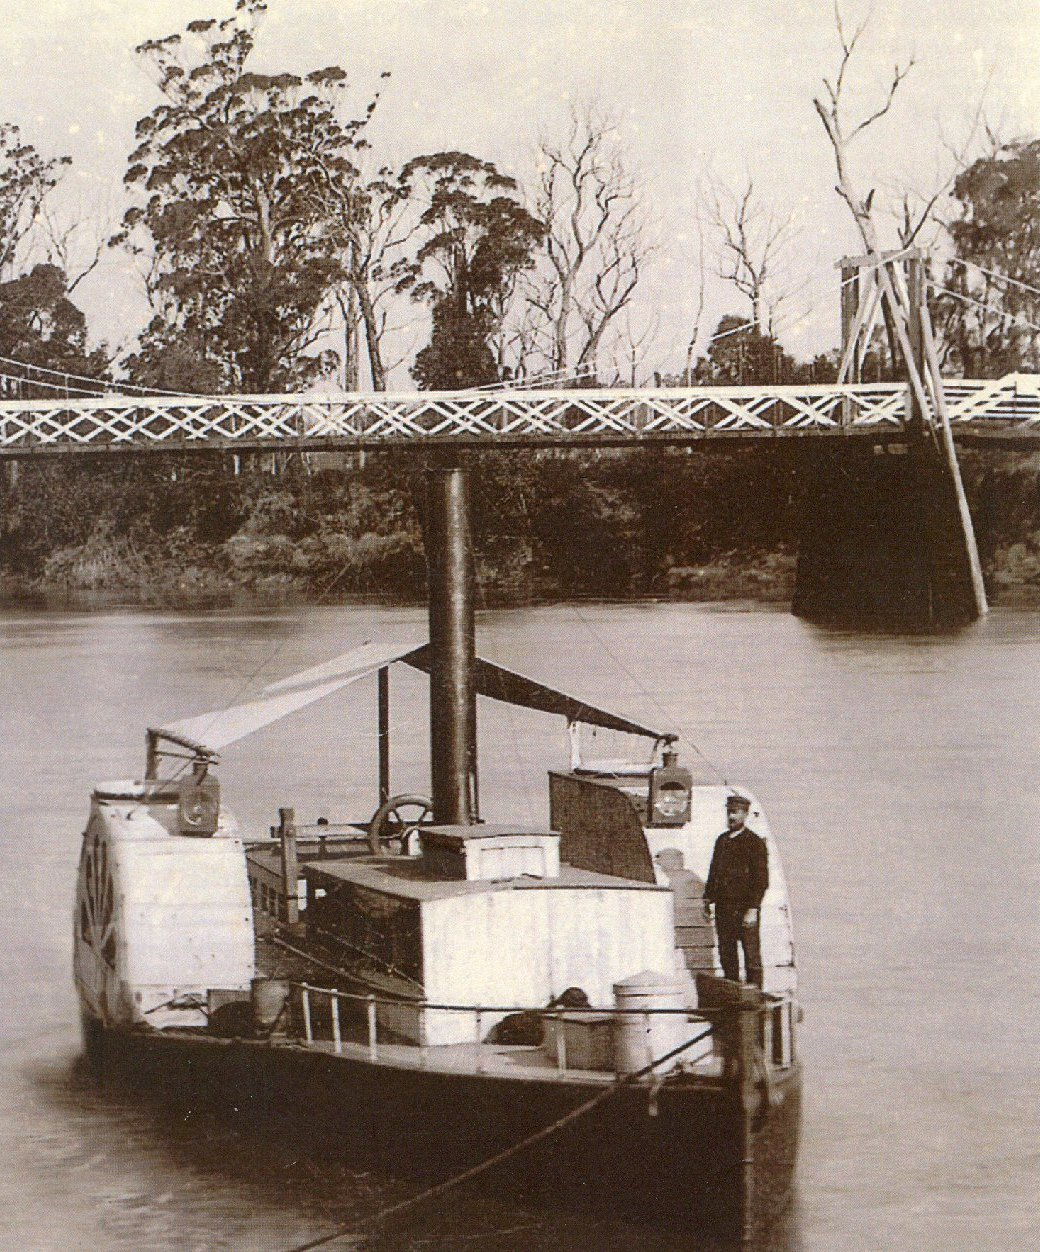 This image was taken, later in the life of Paddle Steamer Curlip, around July / August 1897. She is sporting a new taller funnel, with guy wires attached, her hull colour was painted a darker colour Green, with Copper paint underwater. Frank Richardson is standing on the deck.